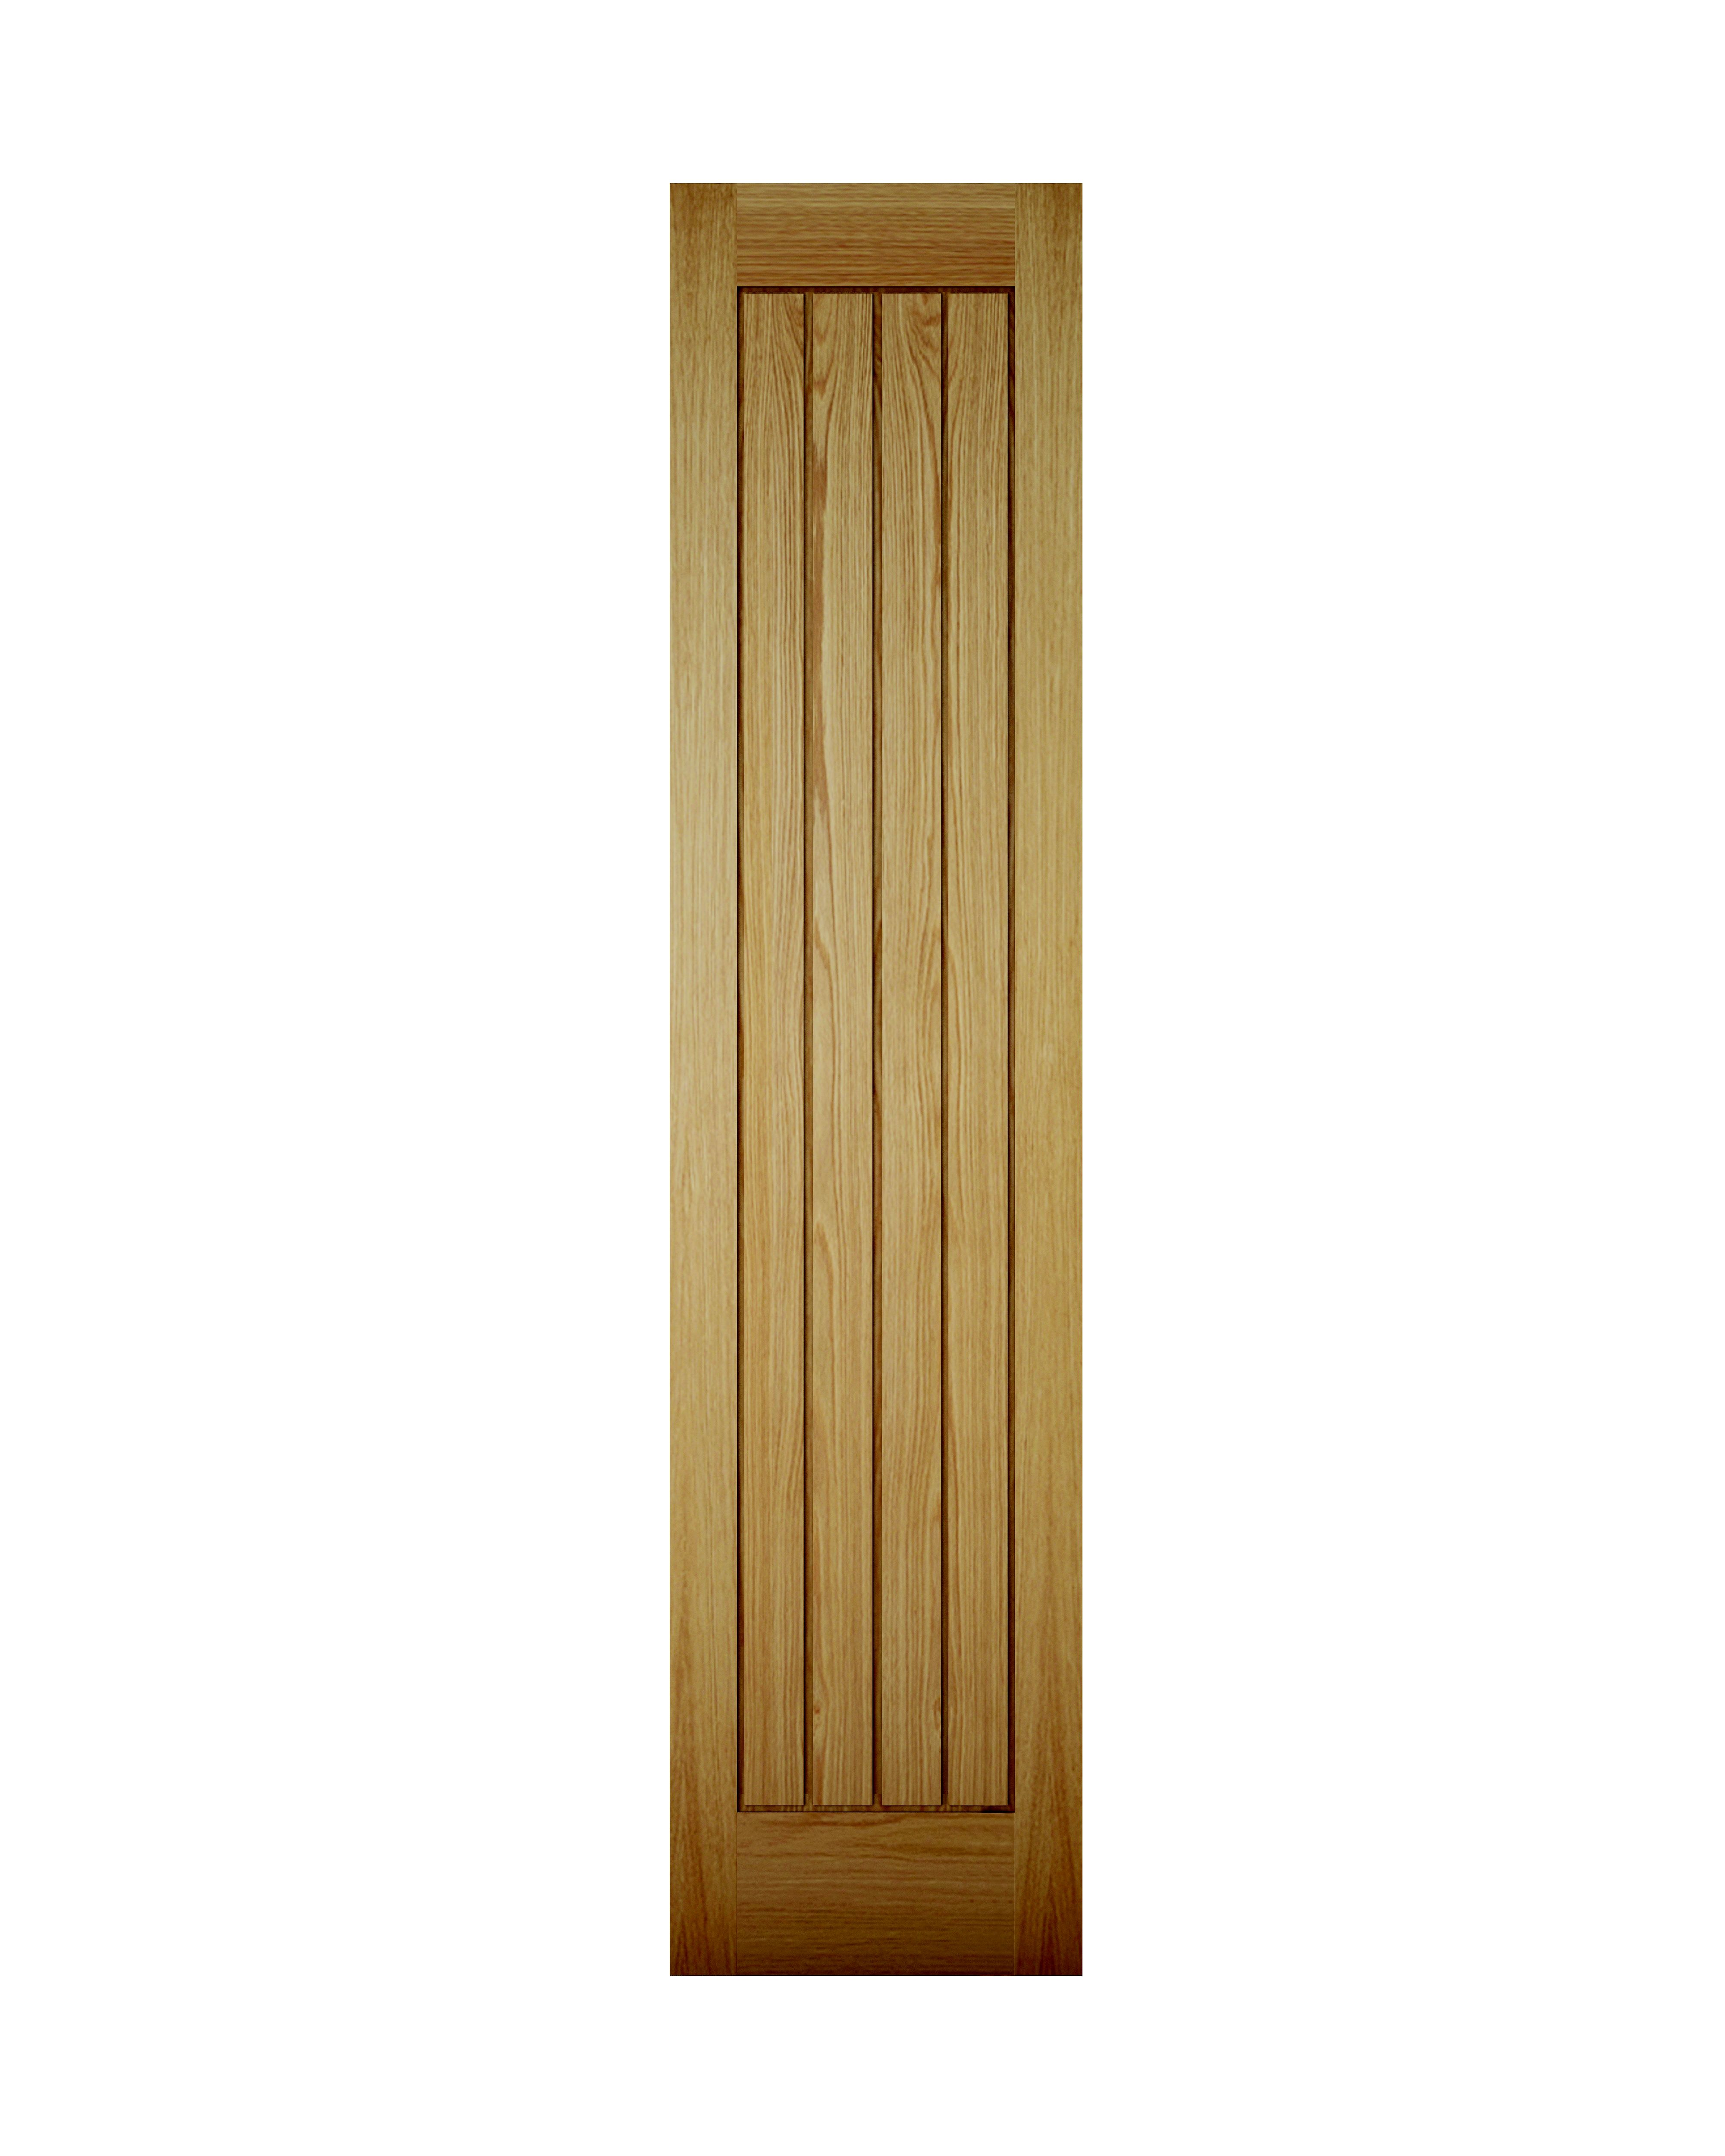 latest china rnhepjpdoiws internal door product exterior doors modern design interior wooden wood composite